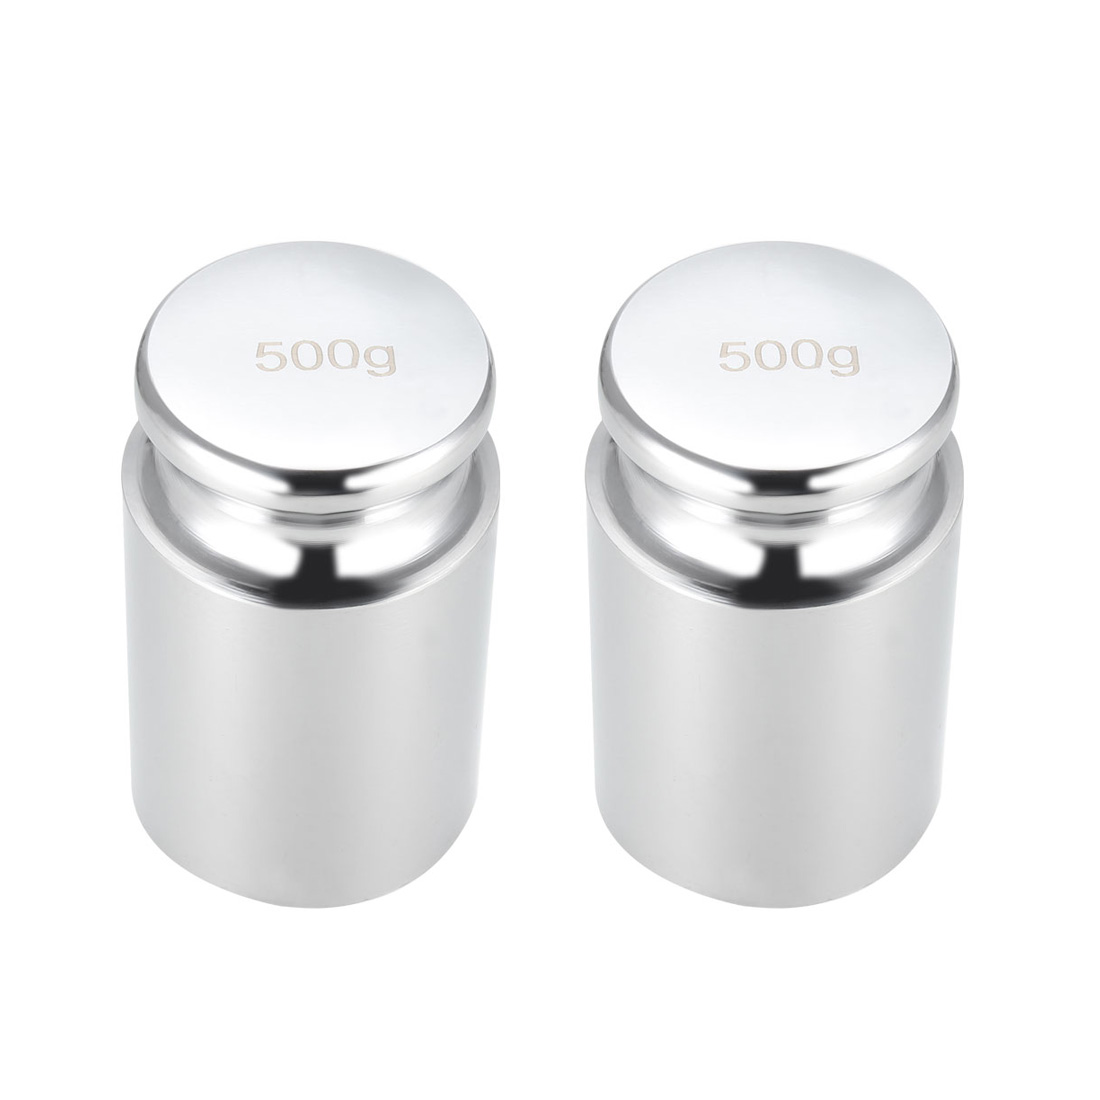 Uxcell 2pcs Gram Calibration Weight 500g M2 Precision Chrome Plated Steel For Digital Pocket Scale And Jewelry Carat Scale